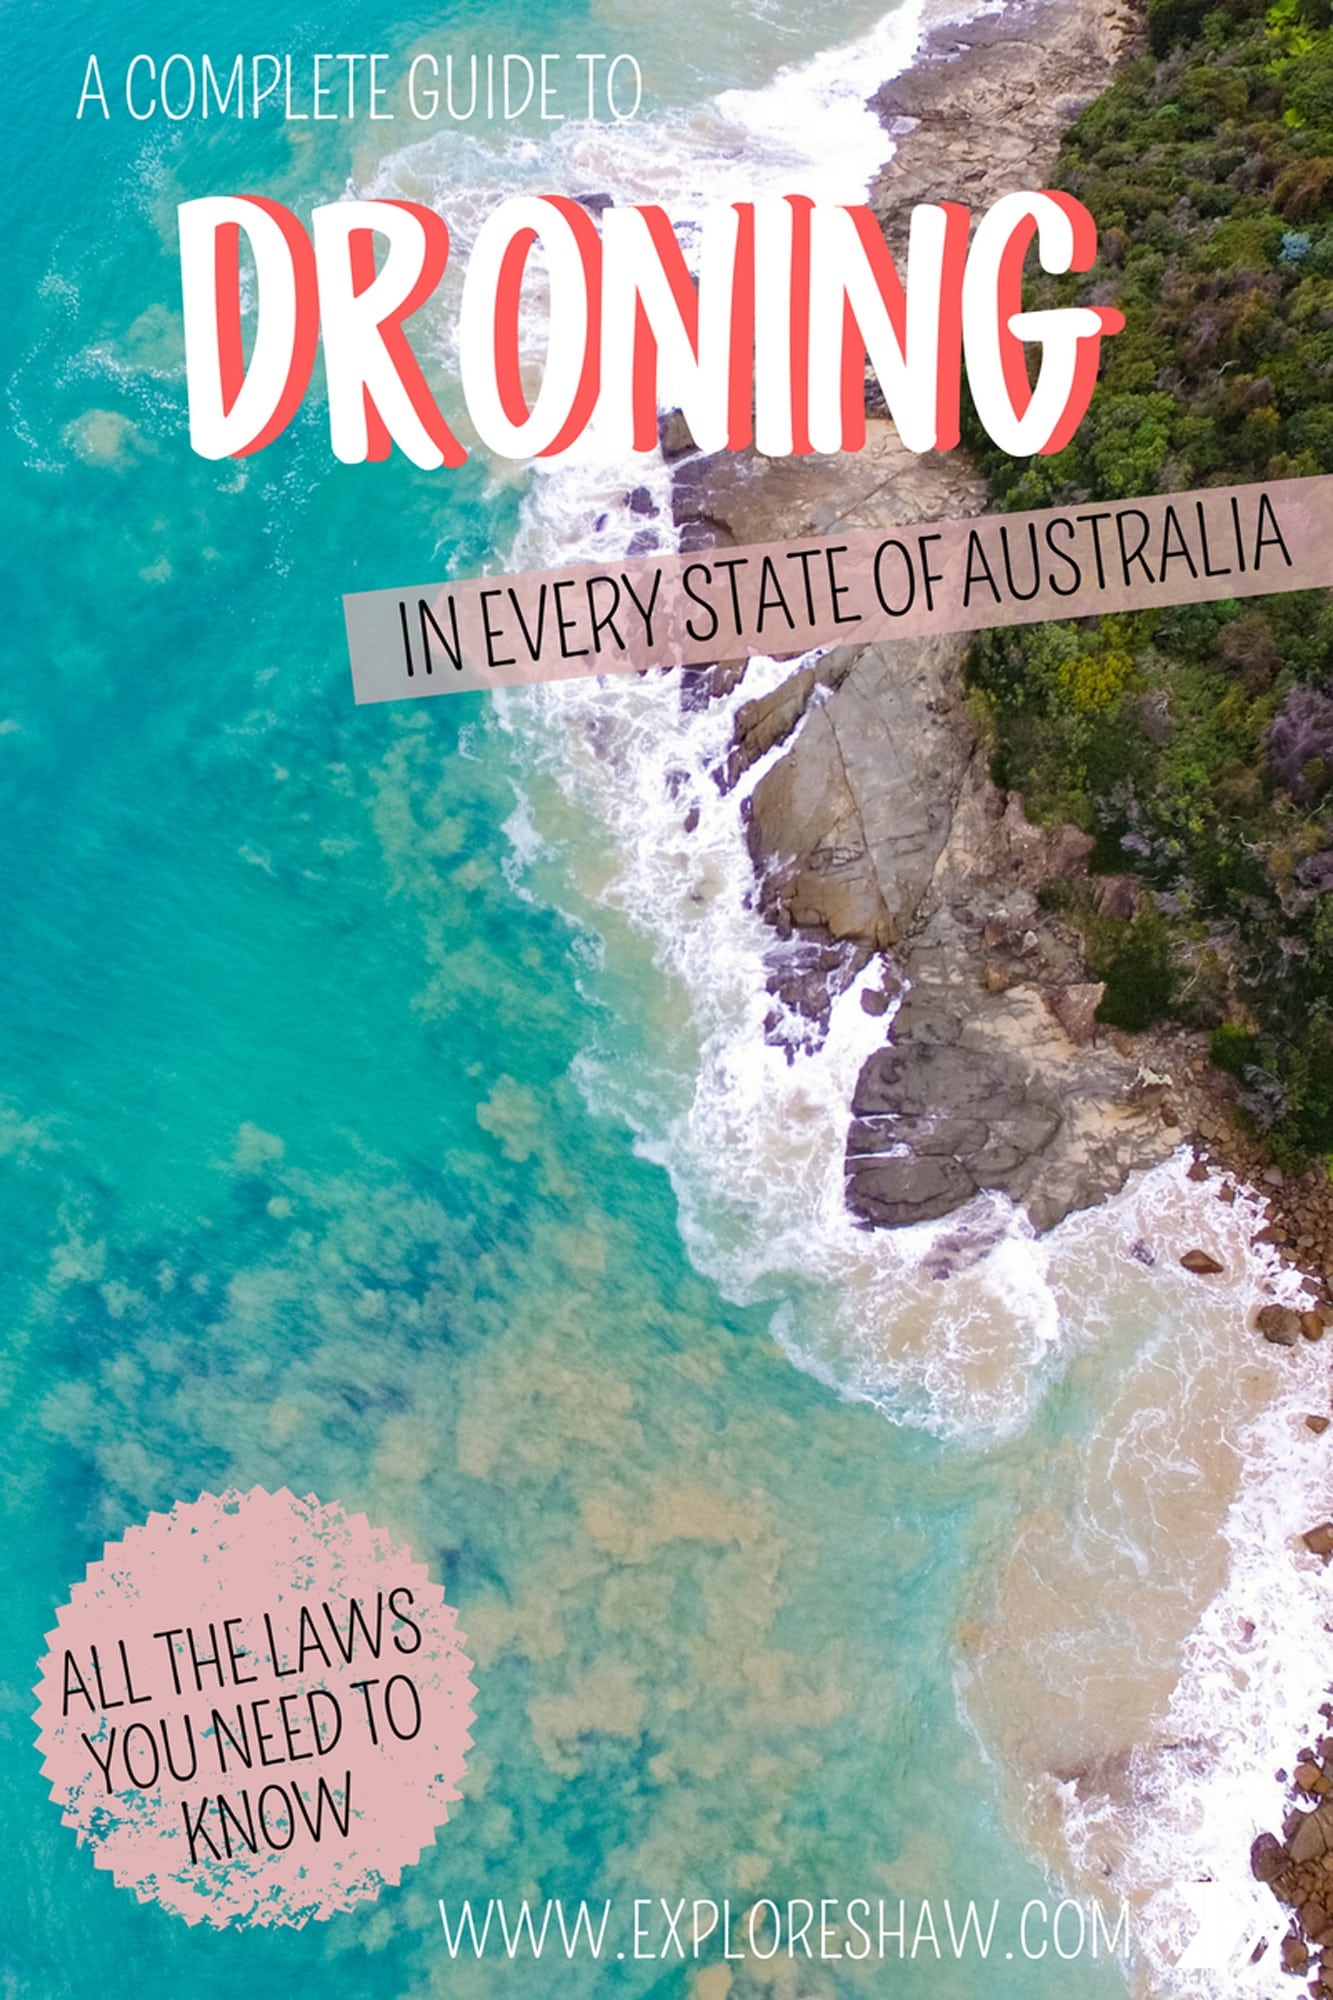 A Complete Guide To Droning In Australia 